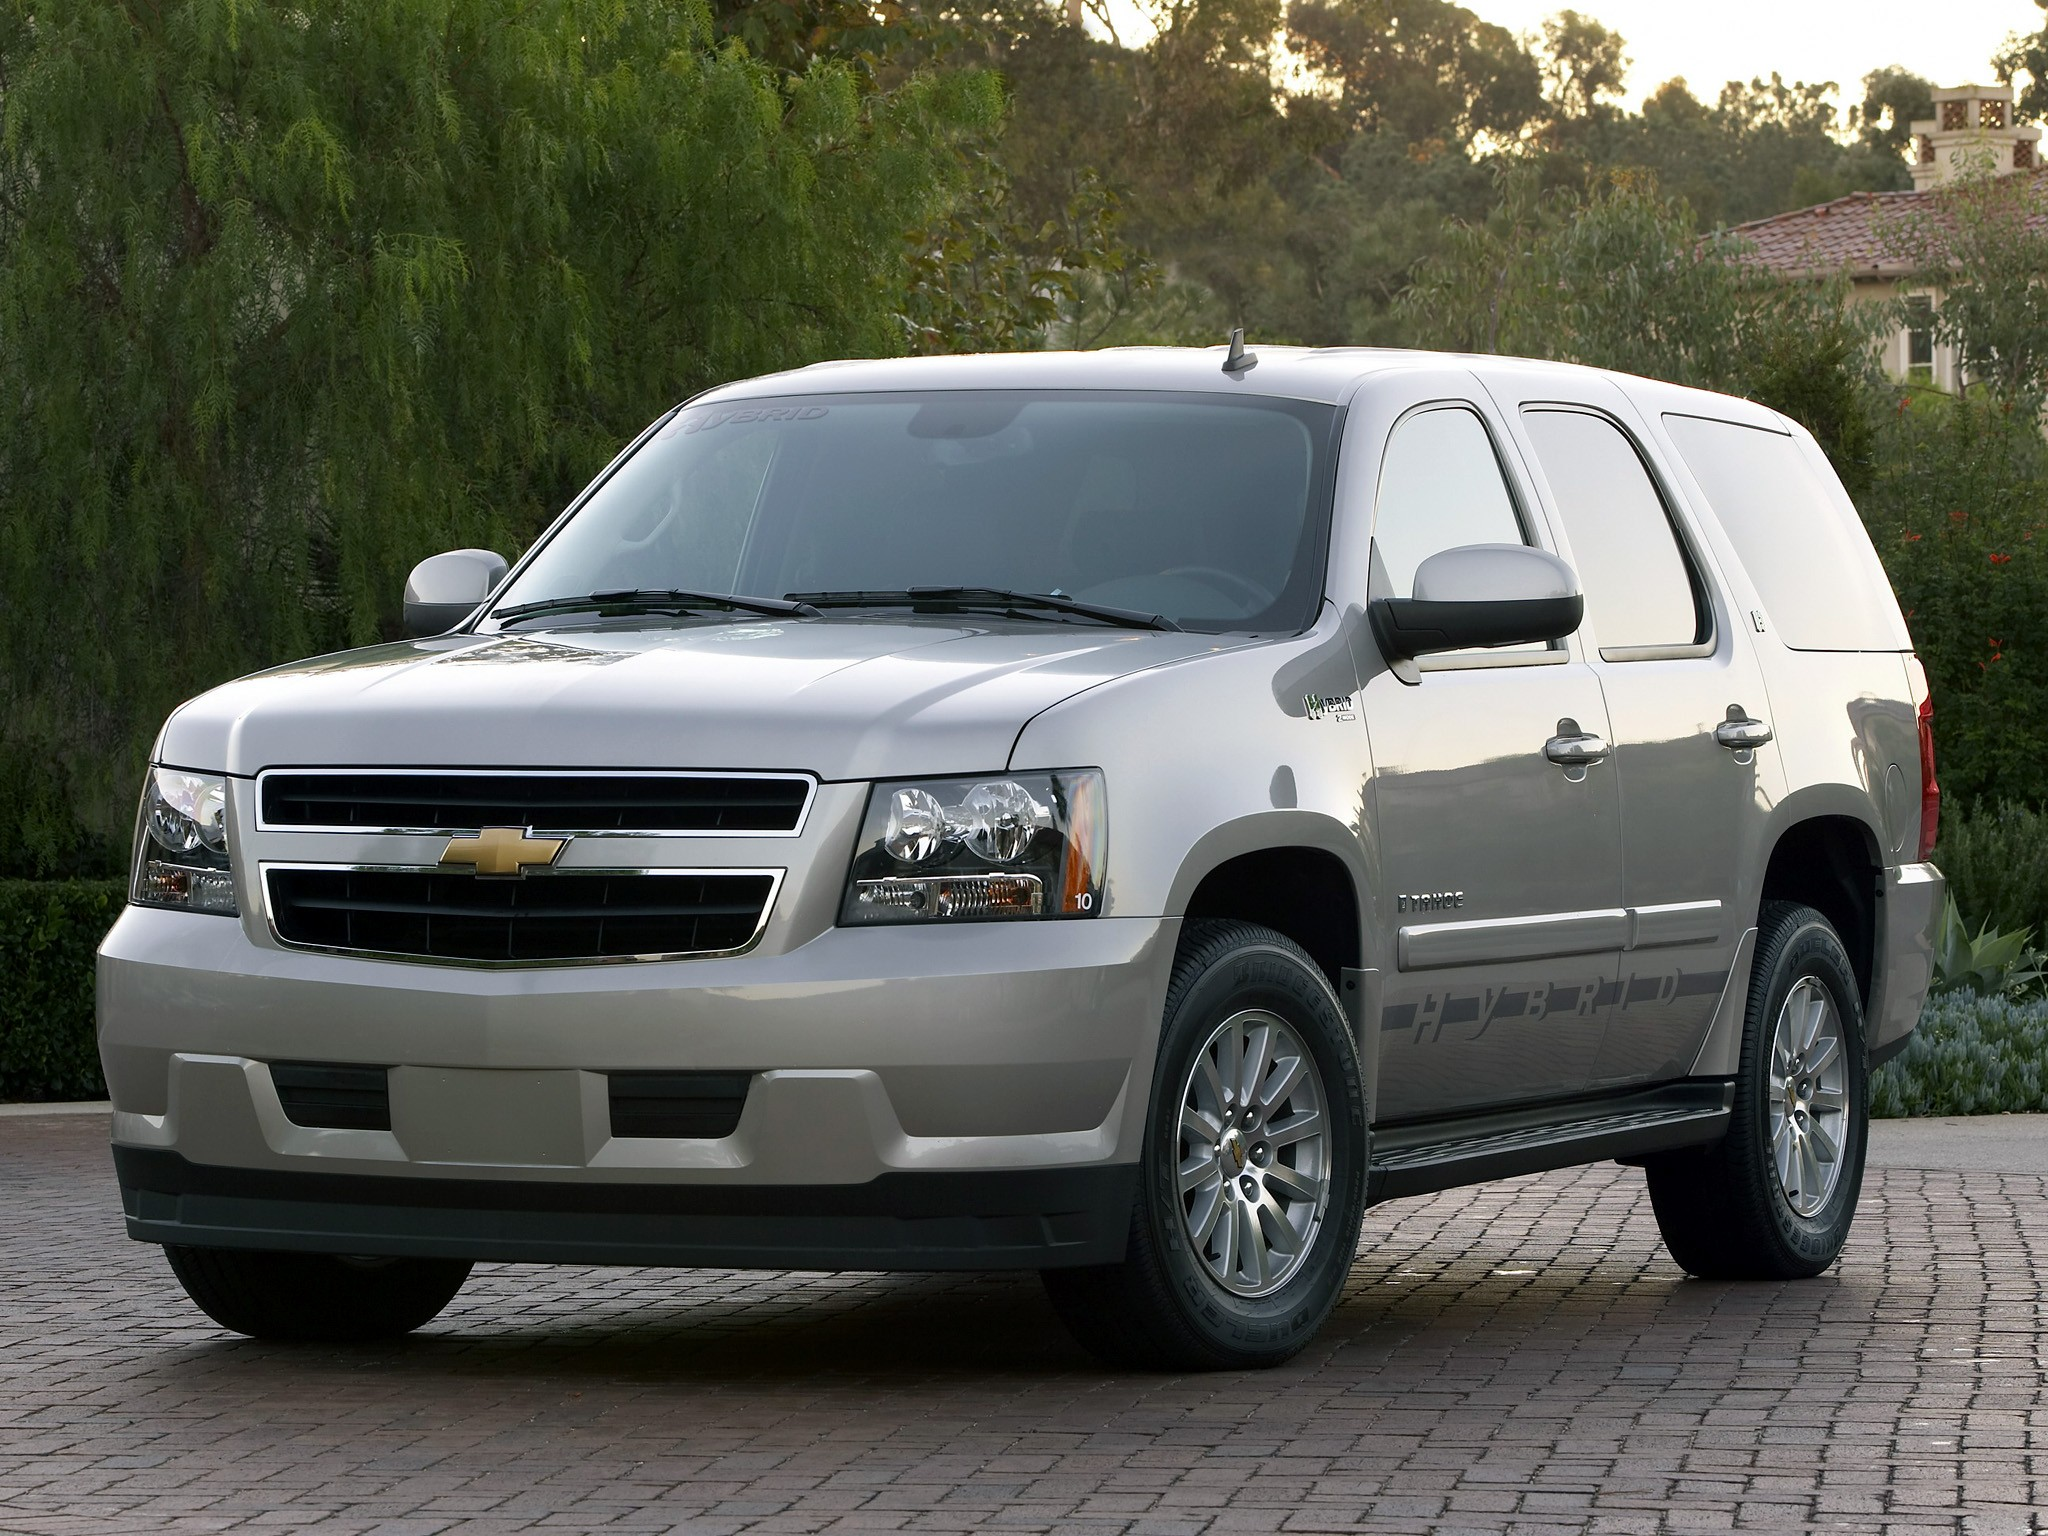 chevrolet tahoe specs 2008 2009 2010 2011 2012 2013. Black Bedroom Furniture Sets. Home Design Ideas